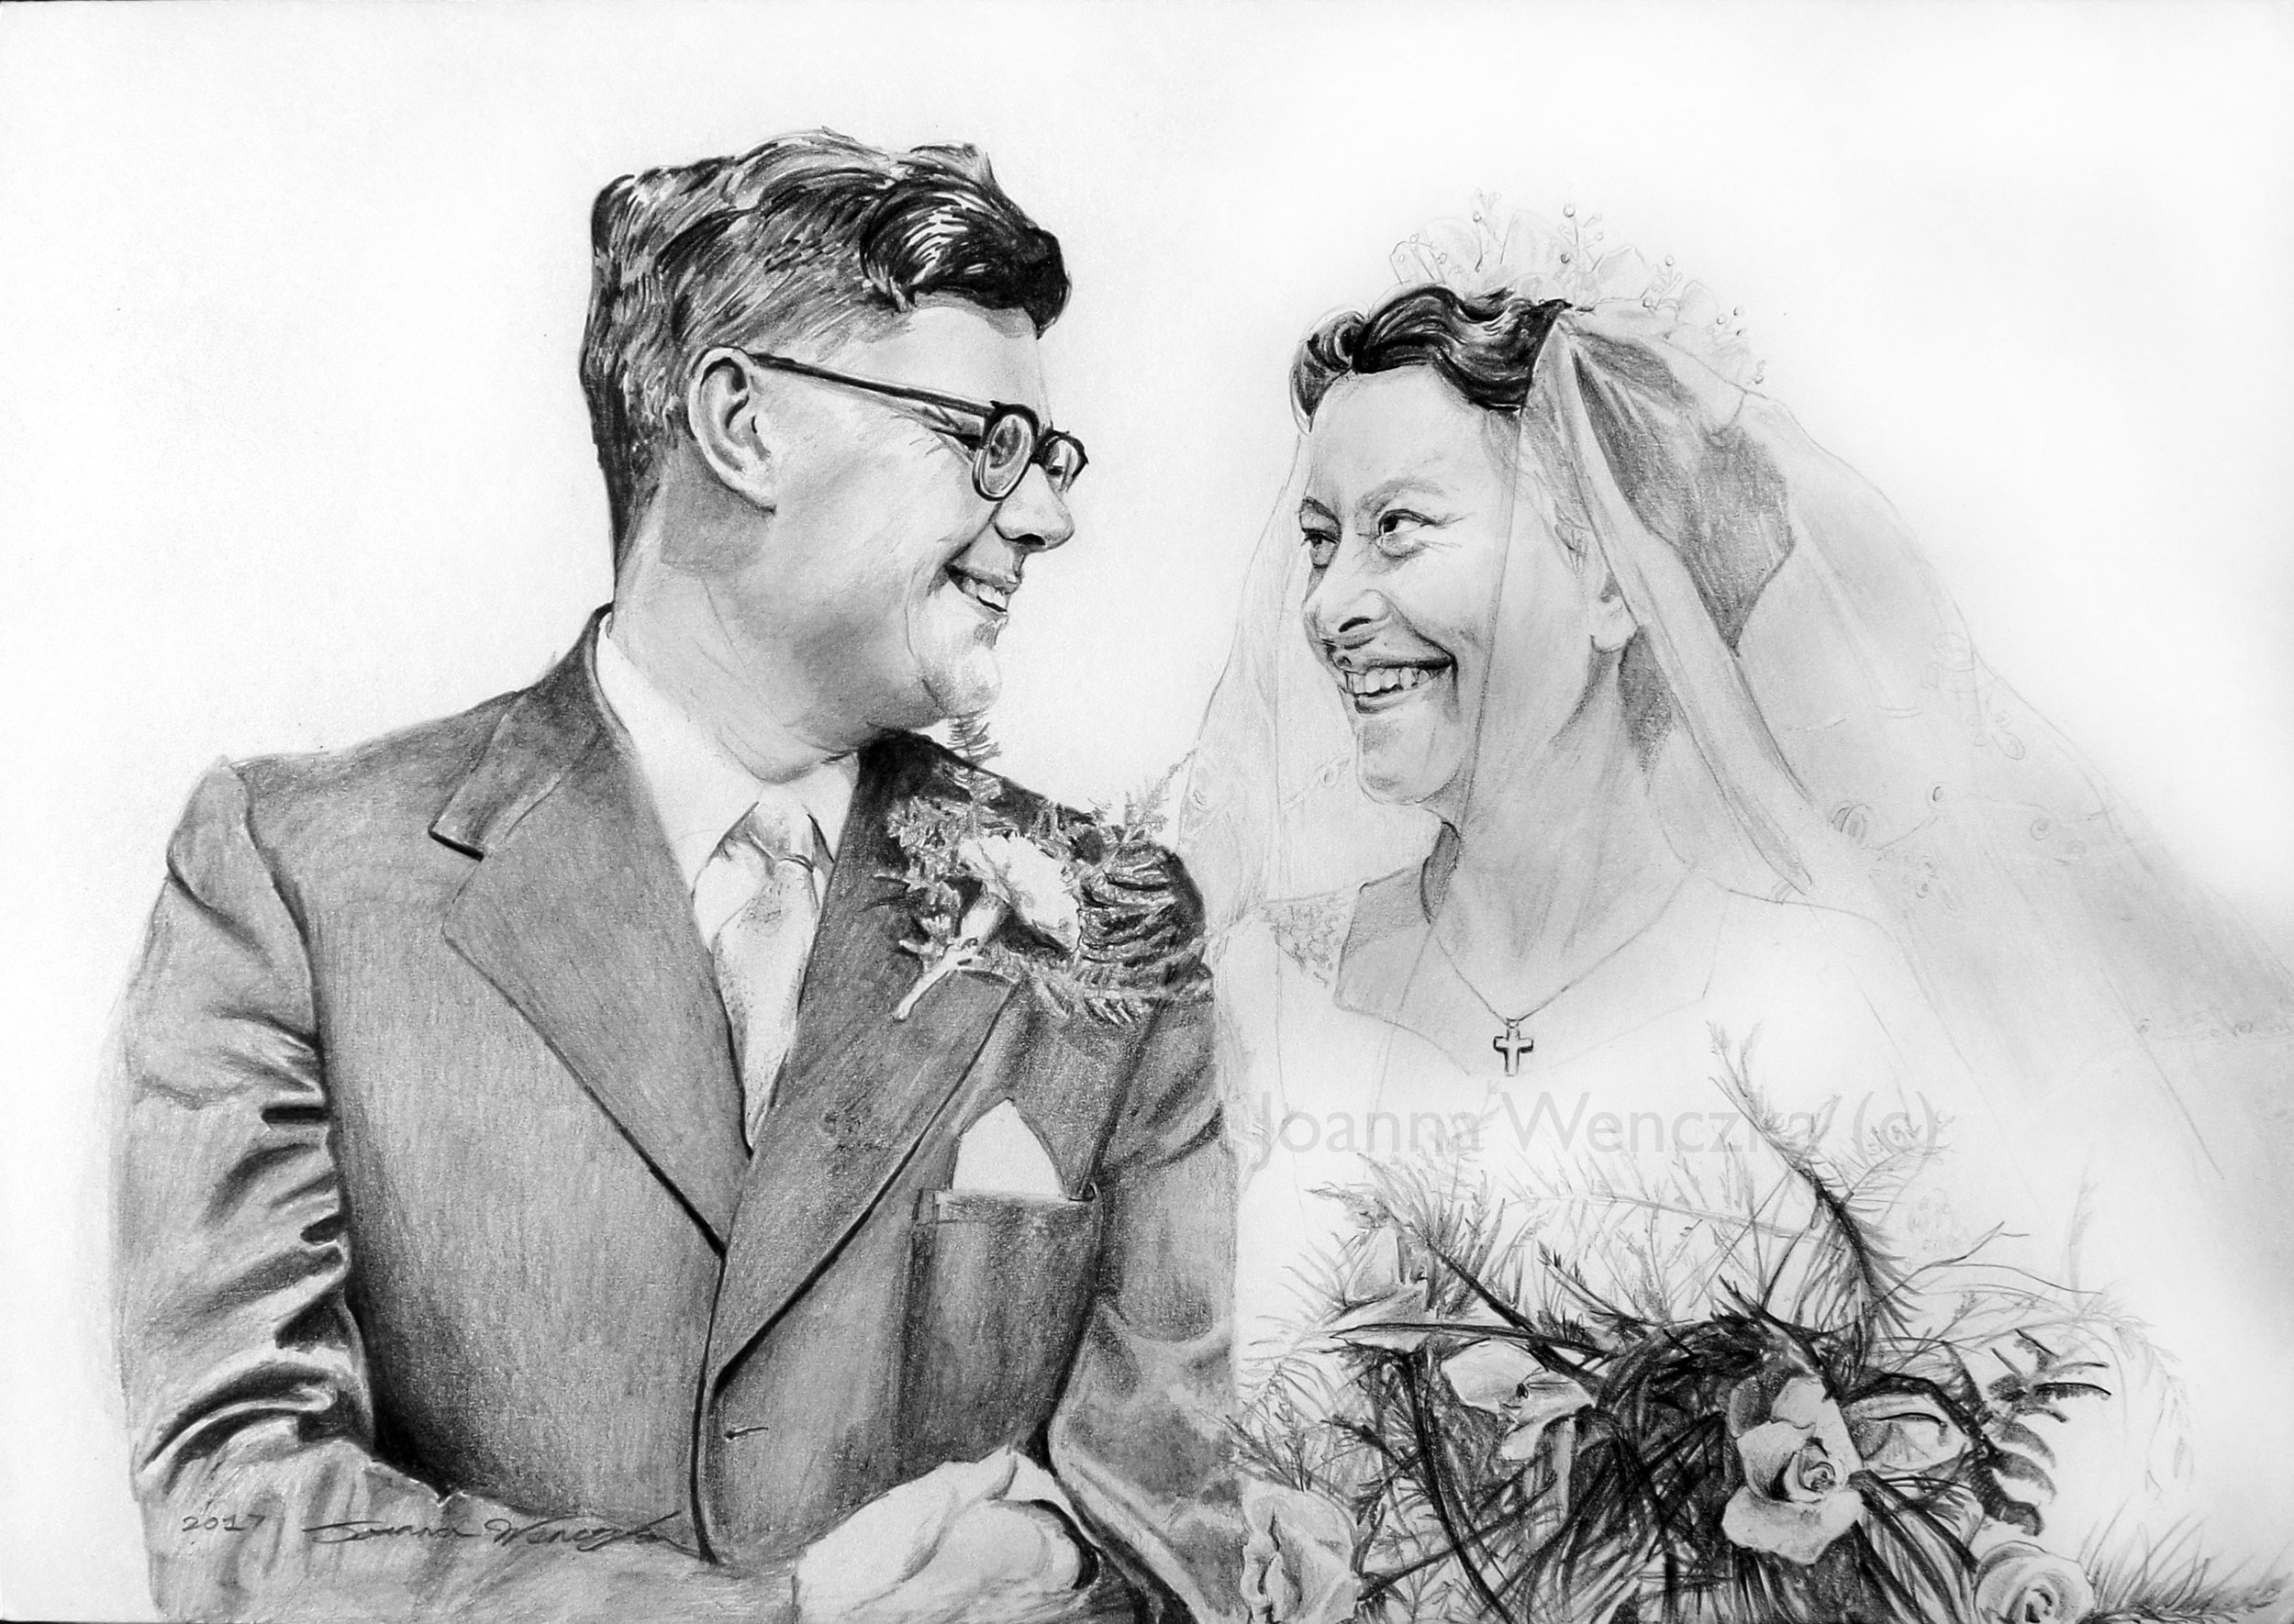 60th Anniversary Commission